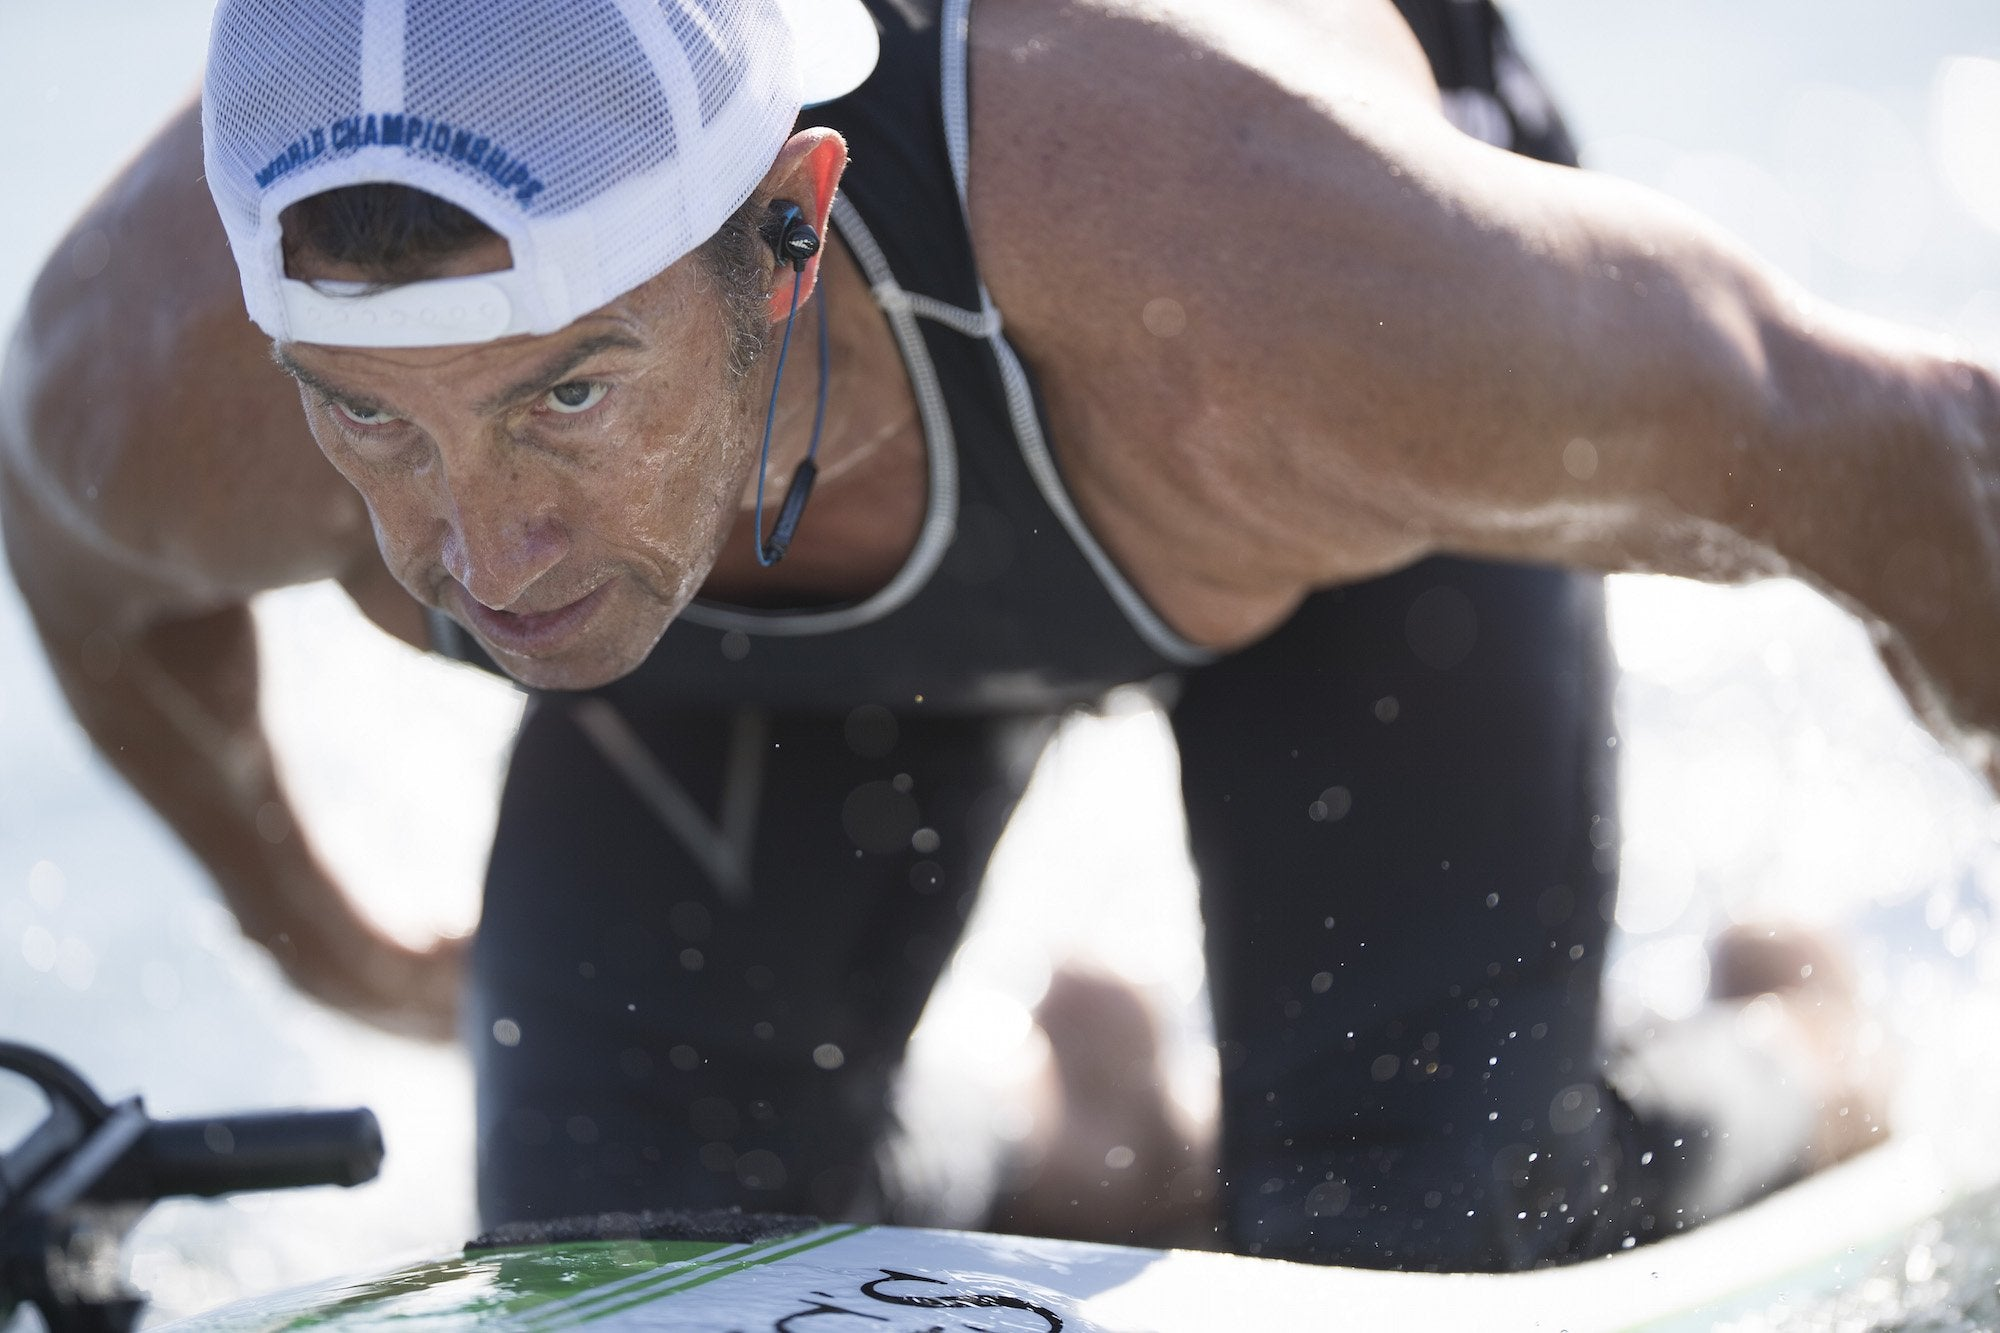 A male focuses ahead while paddleboarding on his knees. Waterproof headphones and music players (or waterproof phone cases) make it possible for ocean athletes to listen to music while working out, without the risk of damaging their devices.